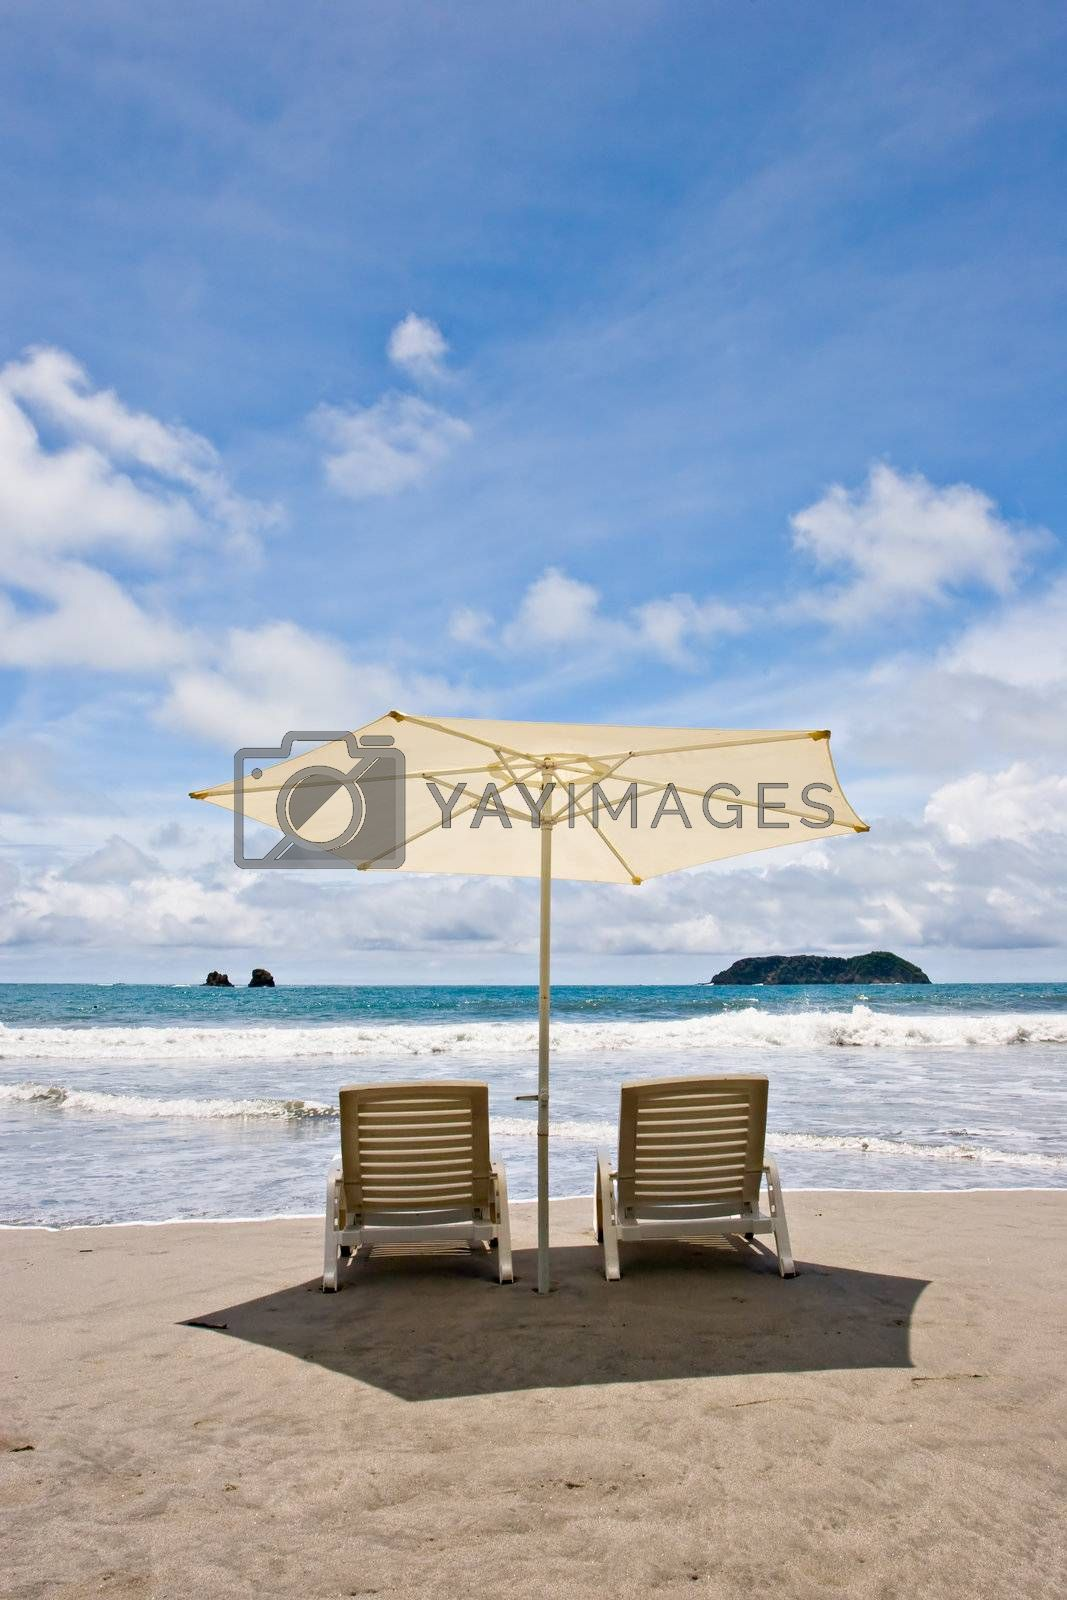 Two chairs and umbrella at the beach. Manuel Antonio, Costa Rica.